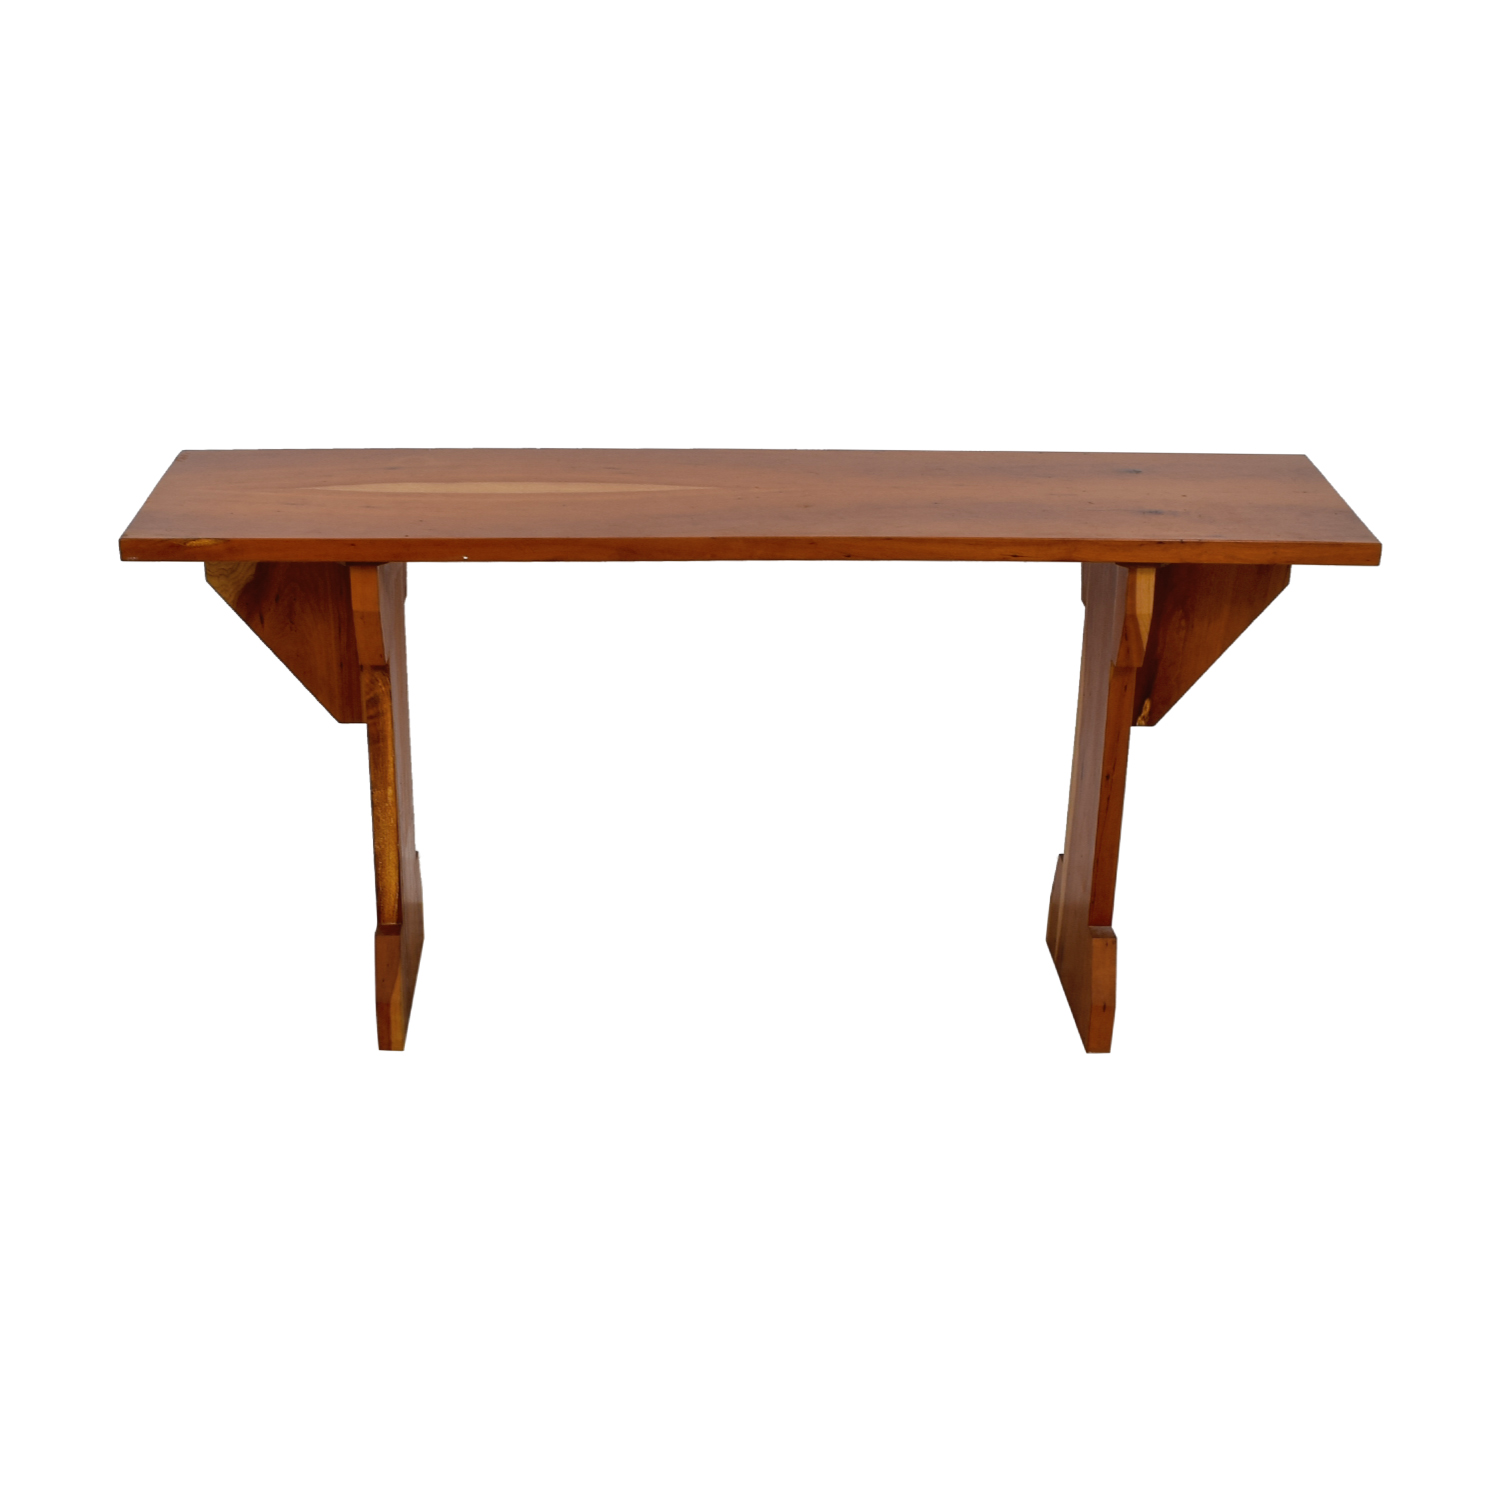 Custom Cherry Wood Narrow Dining Table dimensions